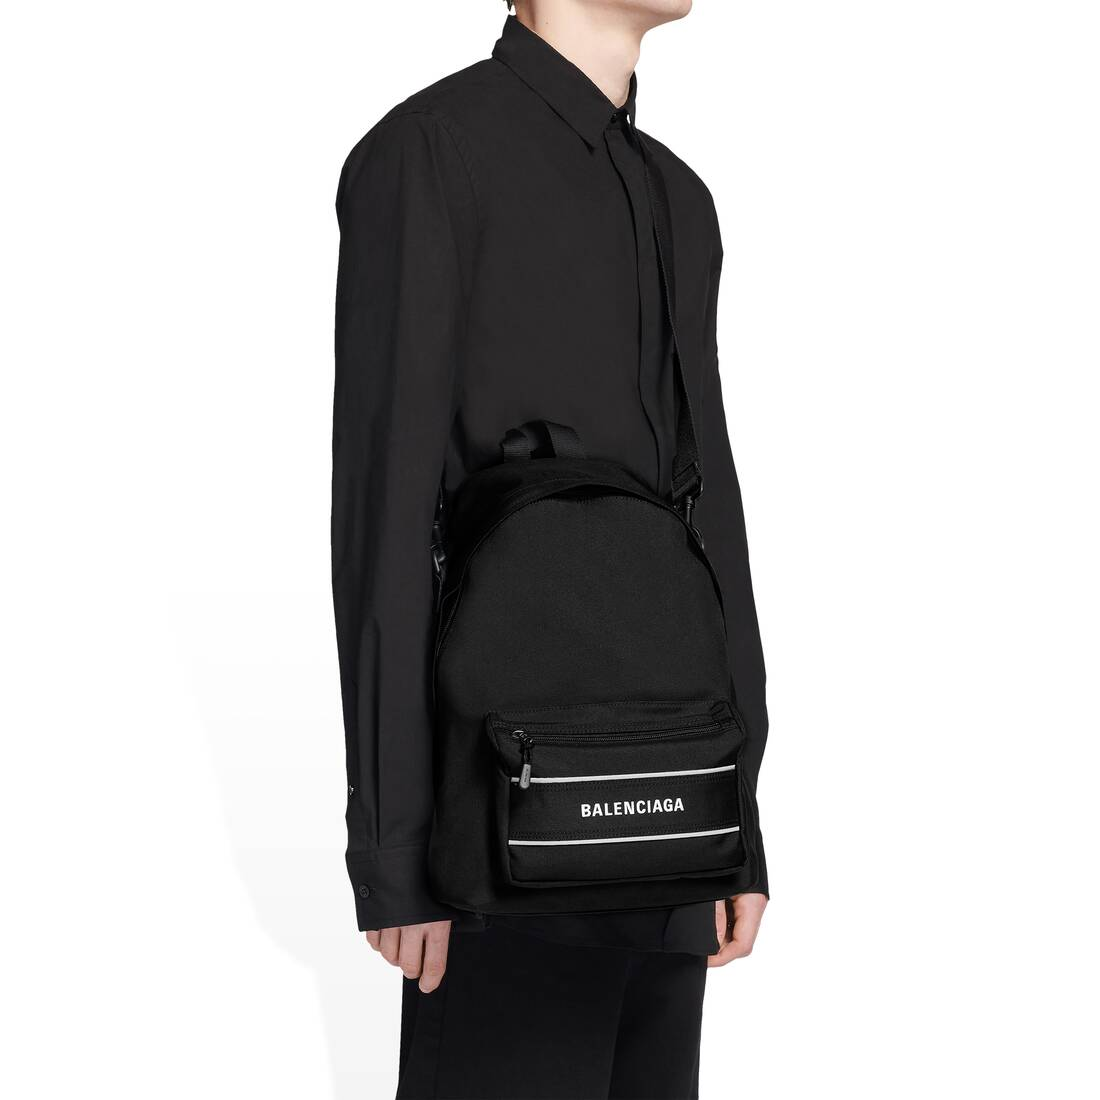 Display zoomed version of sport crossbody backpack 6